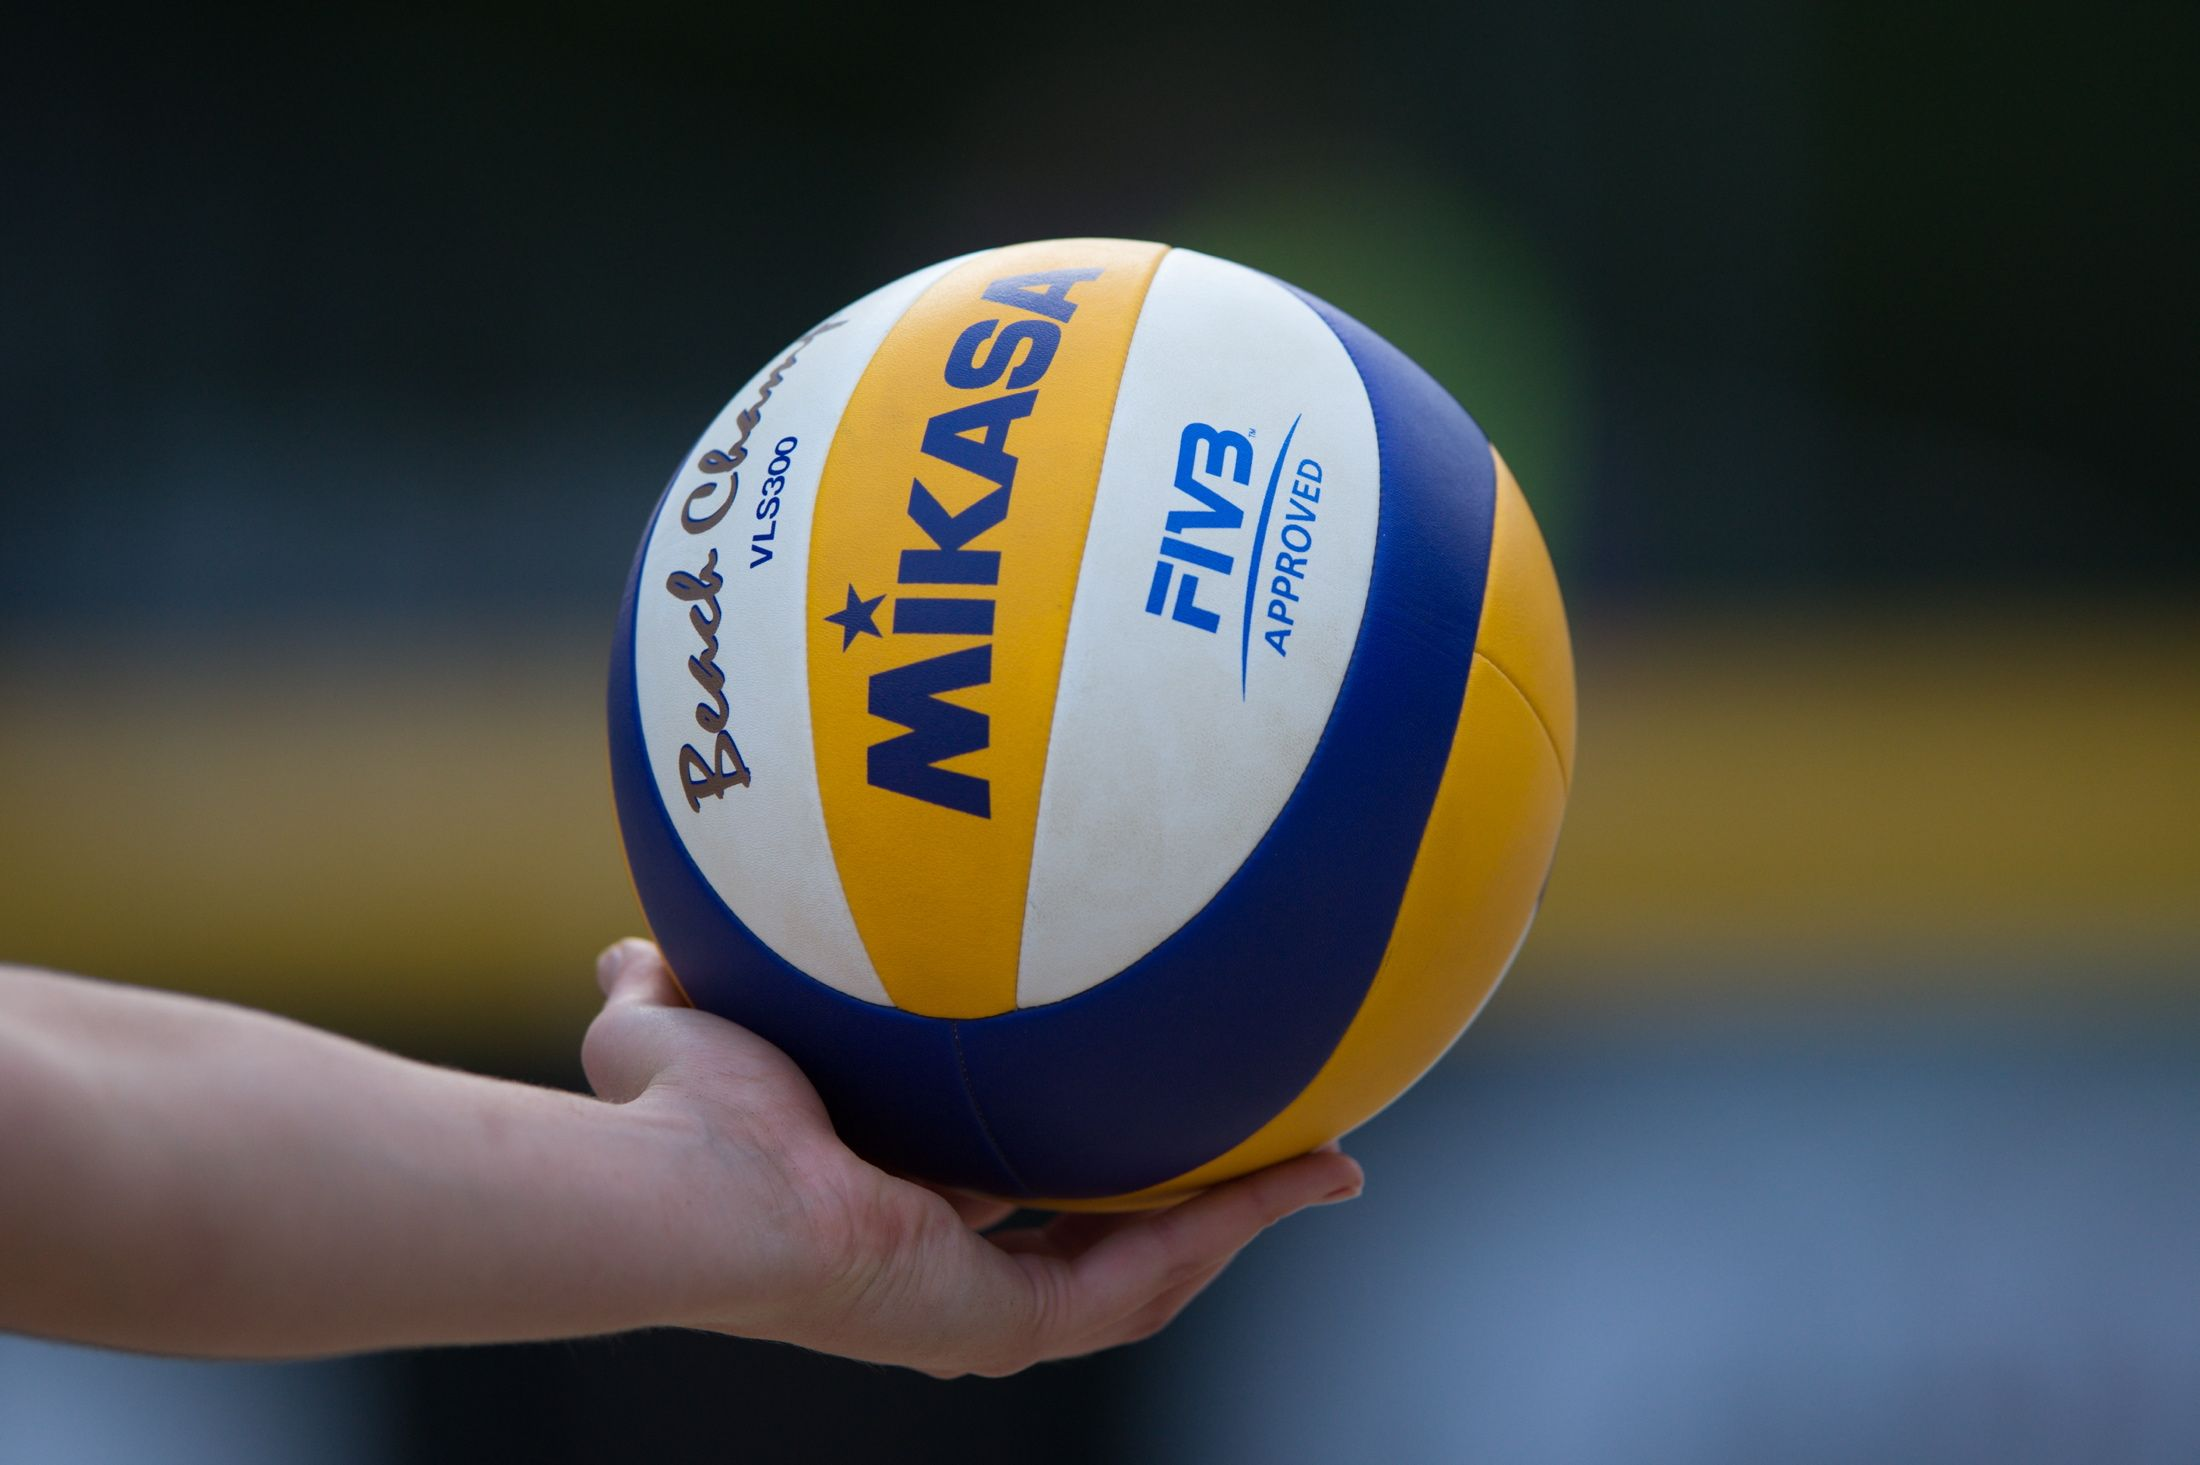 Ballon Mikasa De Beach Volley Volleyball Wallpaper Volleyball Fivb Beach Volleyball